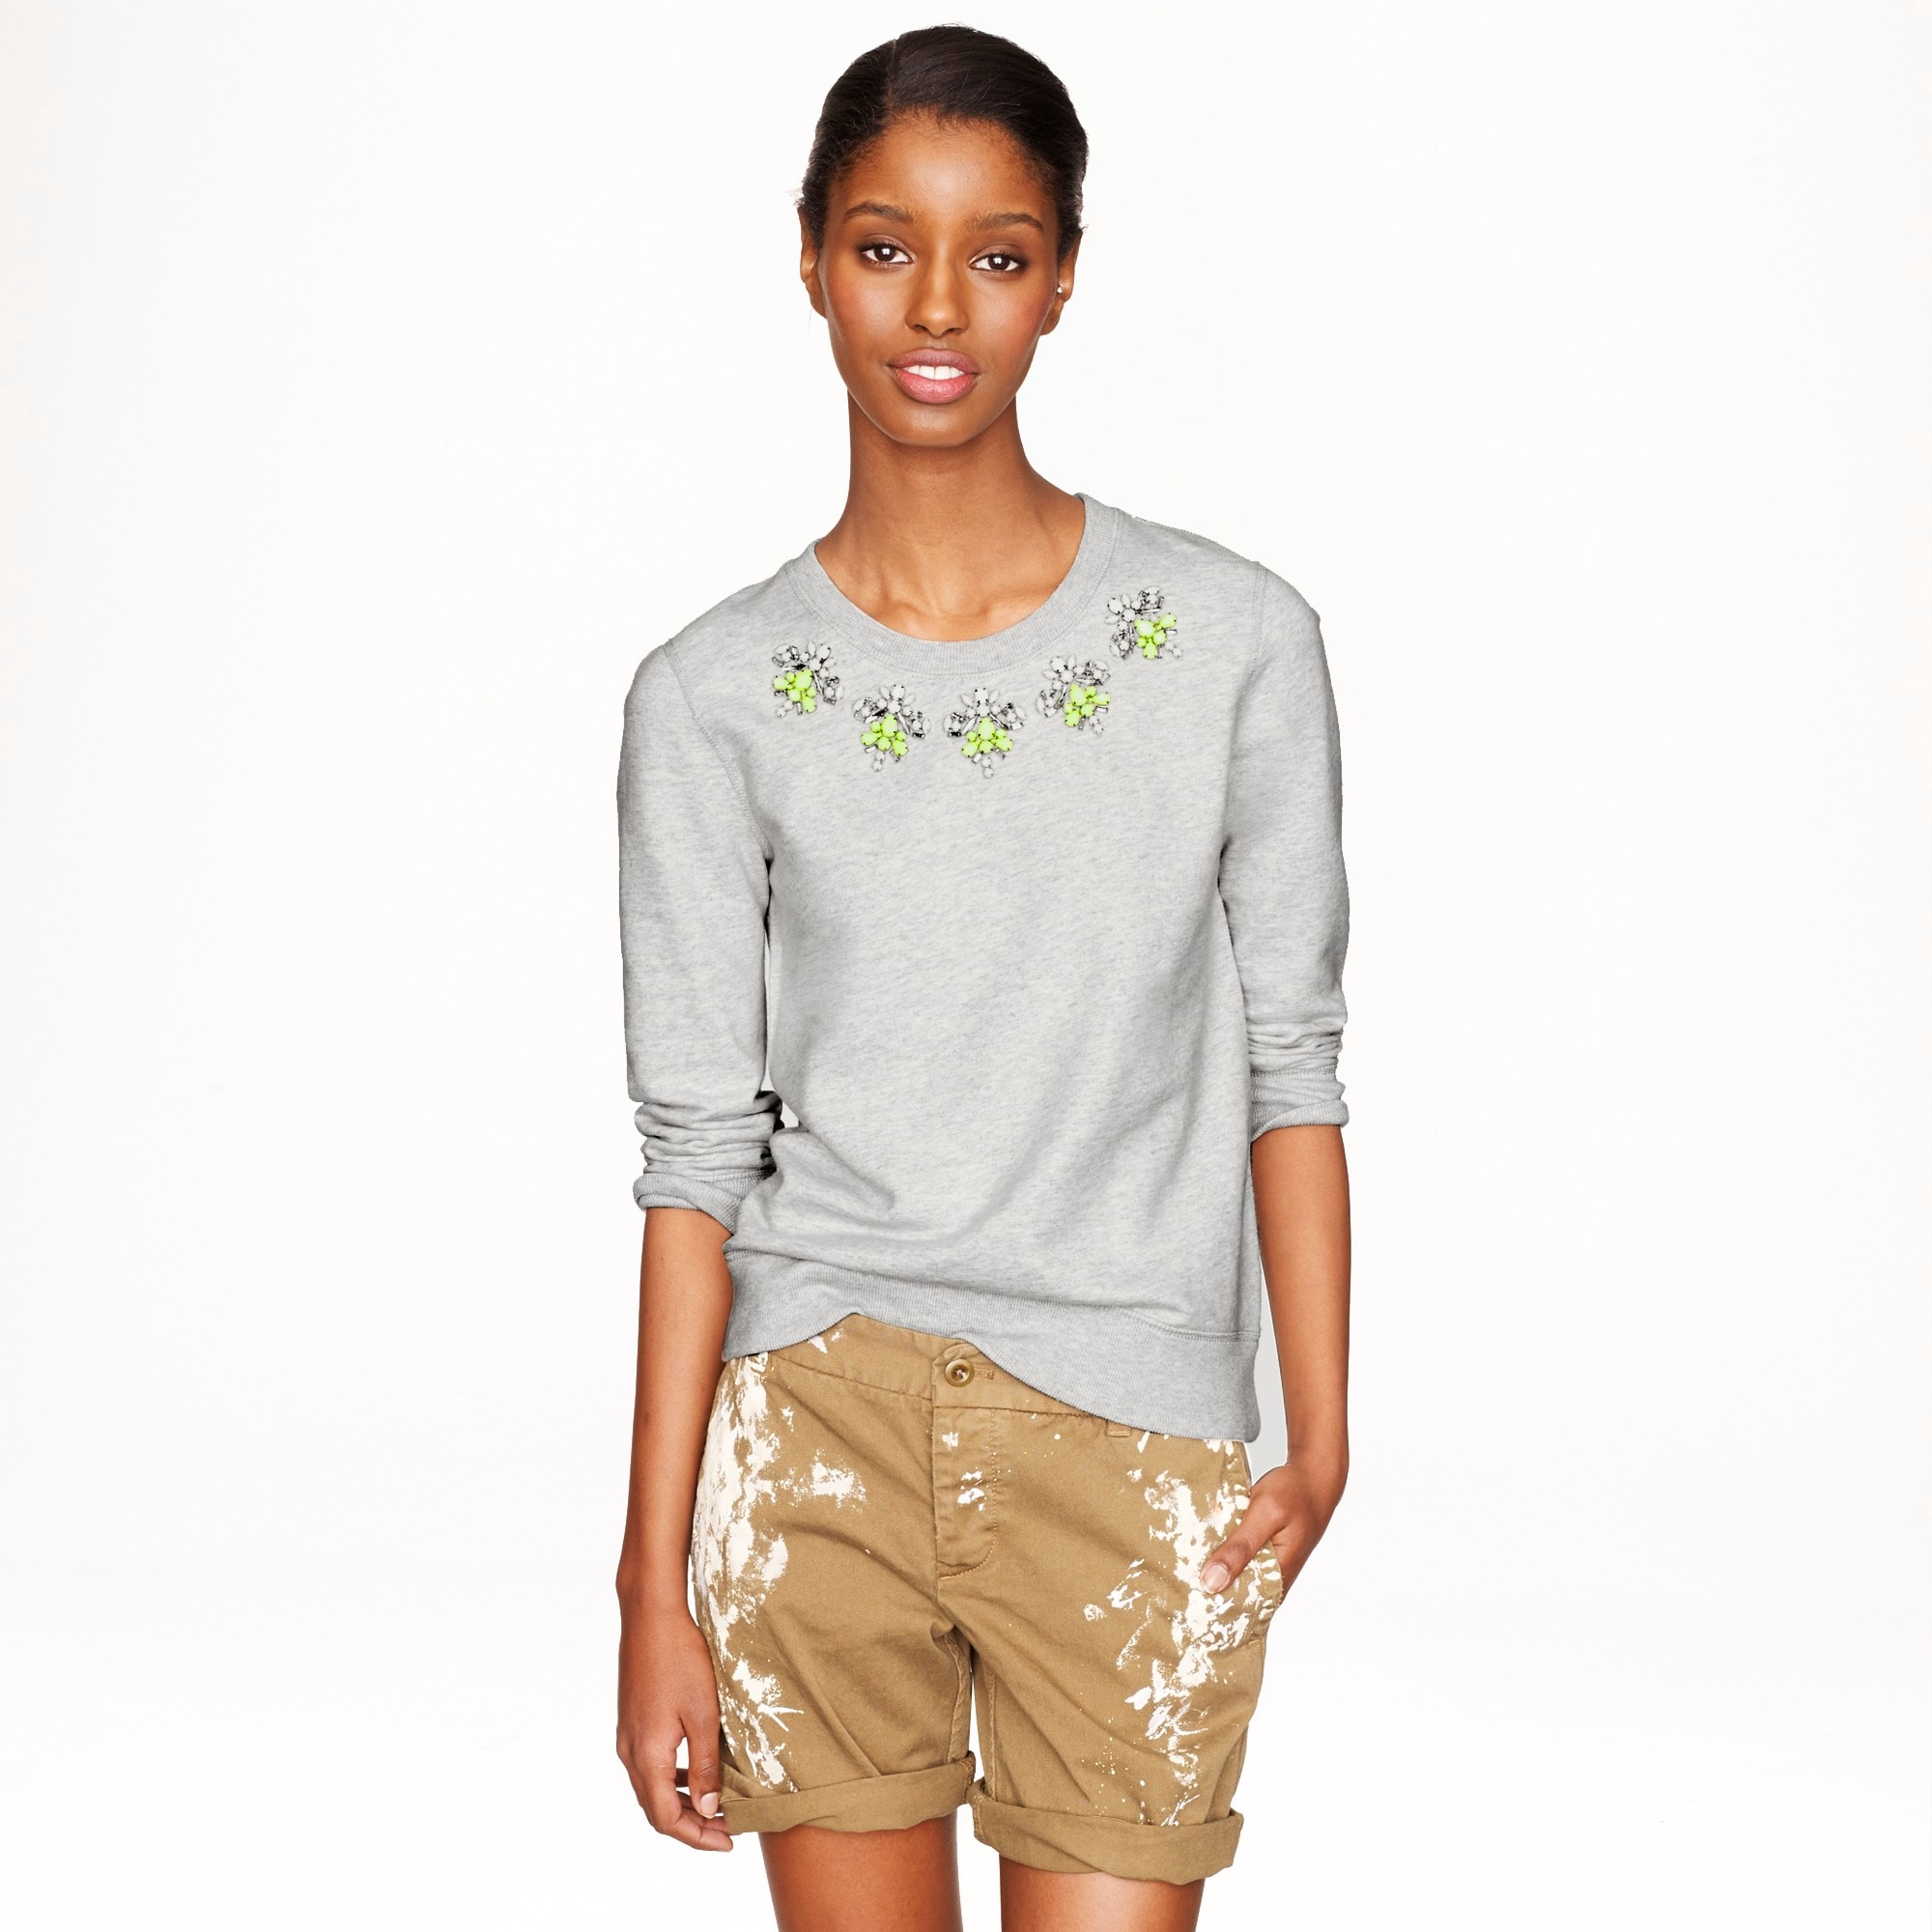 jeweled sweatshirt :